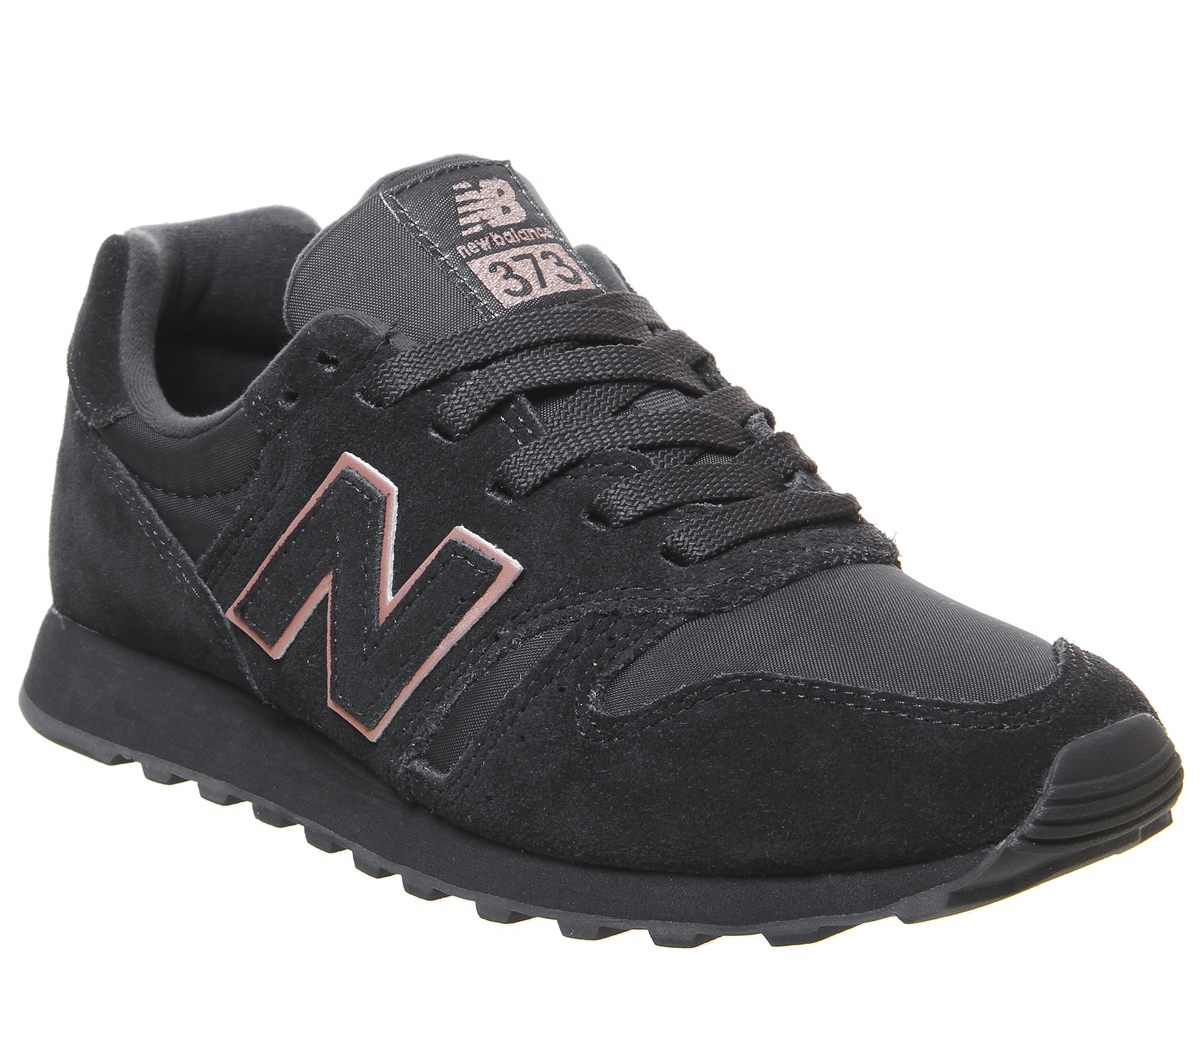 innovative design 5fb72 e02d0 Détails sur Chaussures Femme New Balance Wl373 Baskets Phantom Or Rose  Exclusive Trainers Shoes- afficher le titre d origine